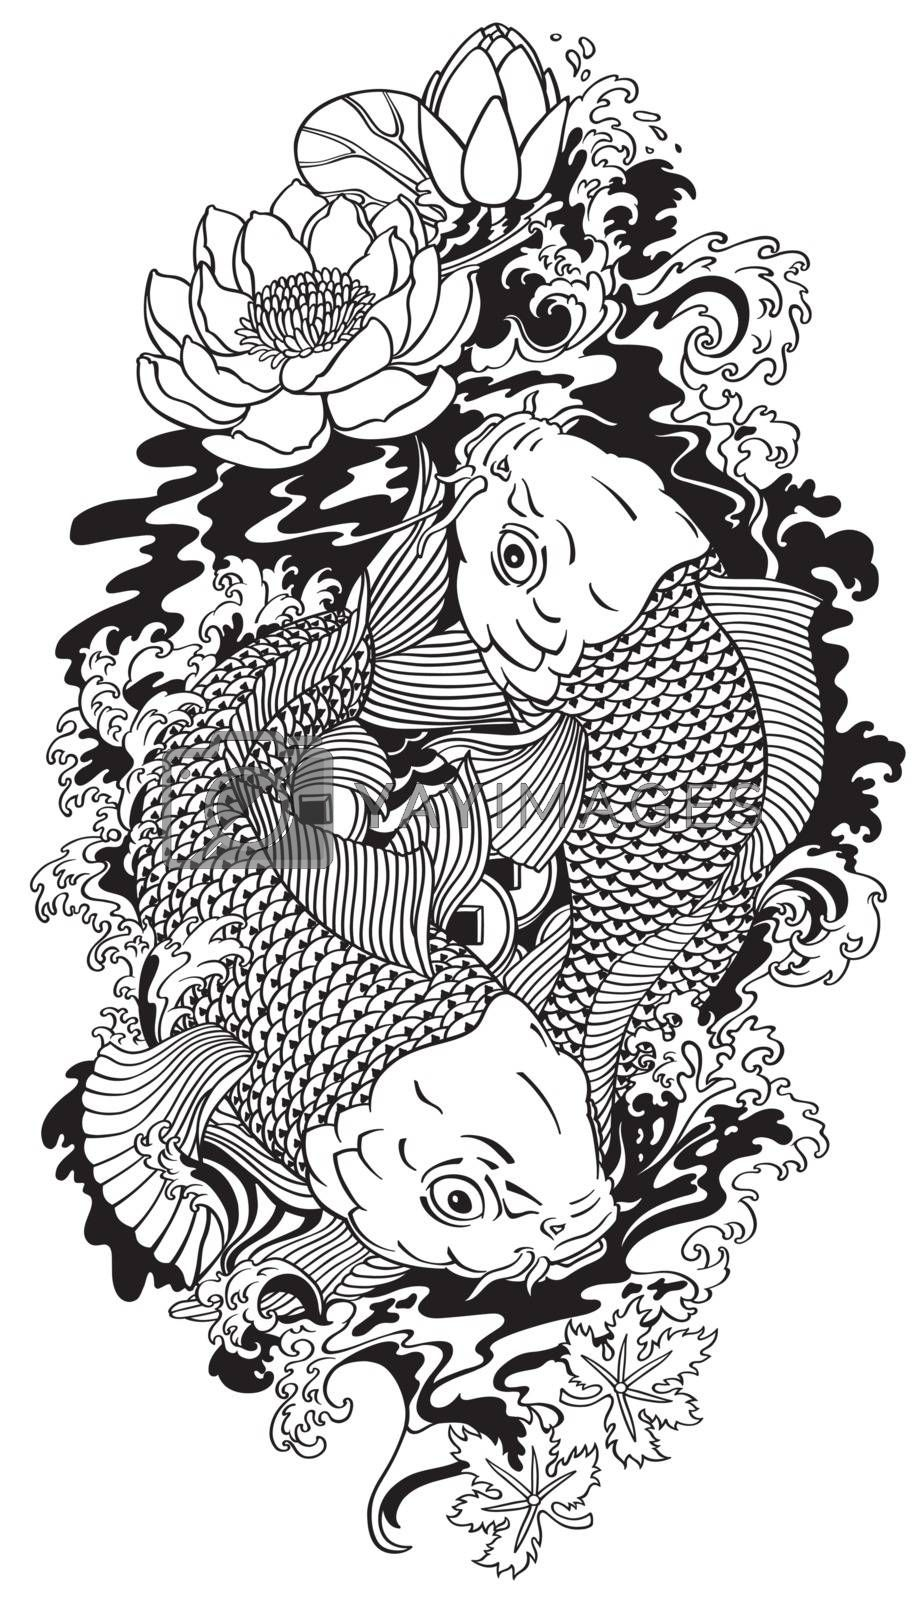 two koi gold carp fishes . Lotus flower with water splash and feng shui money coins .Black and white  tattoo style vector illustration